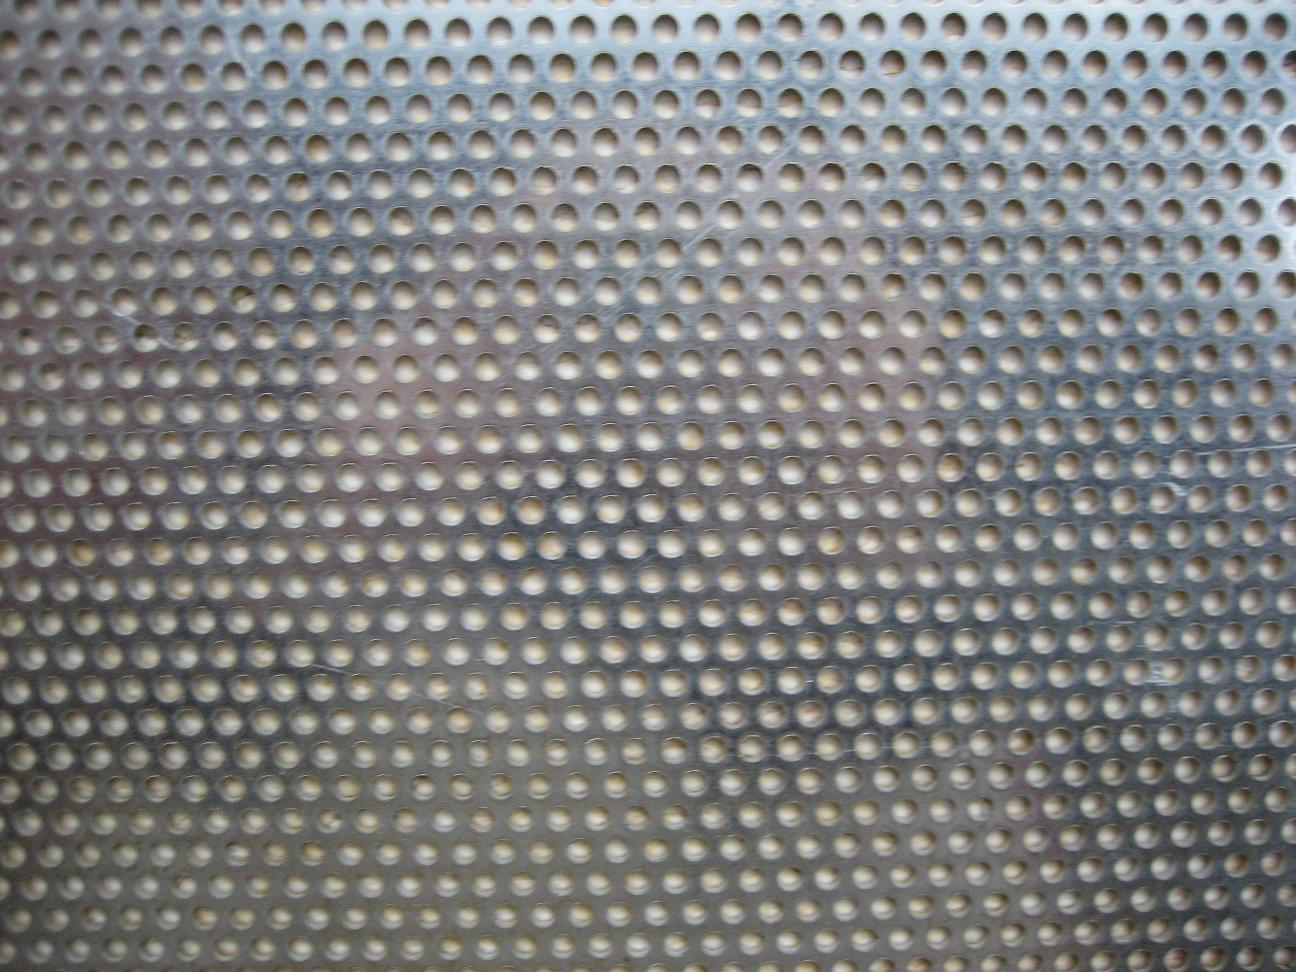 Stainless Steel Wire Mesh Perforated Metal Sheets